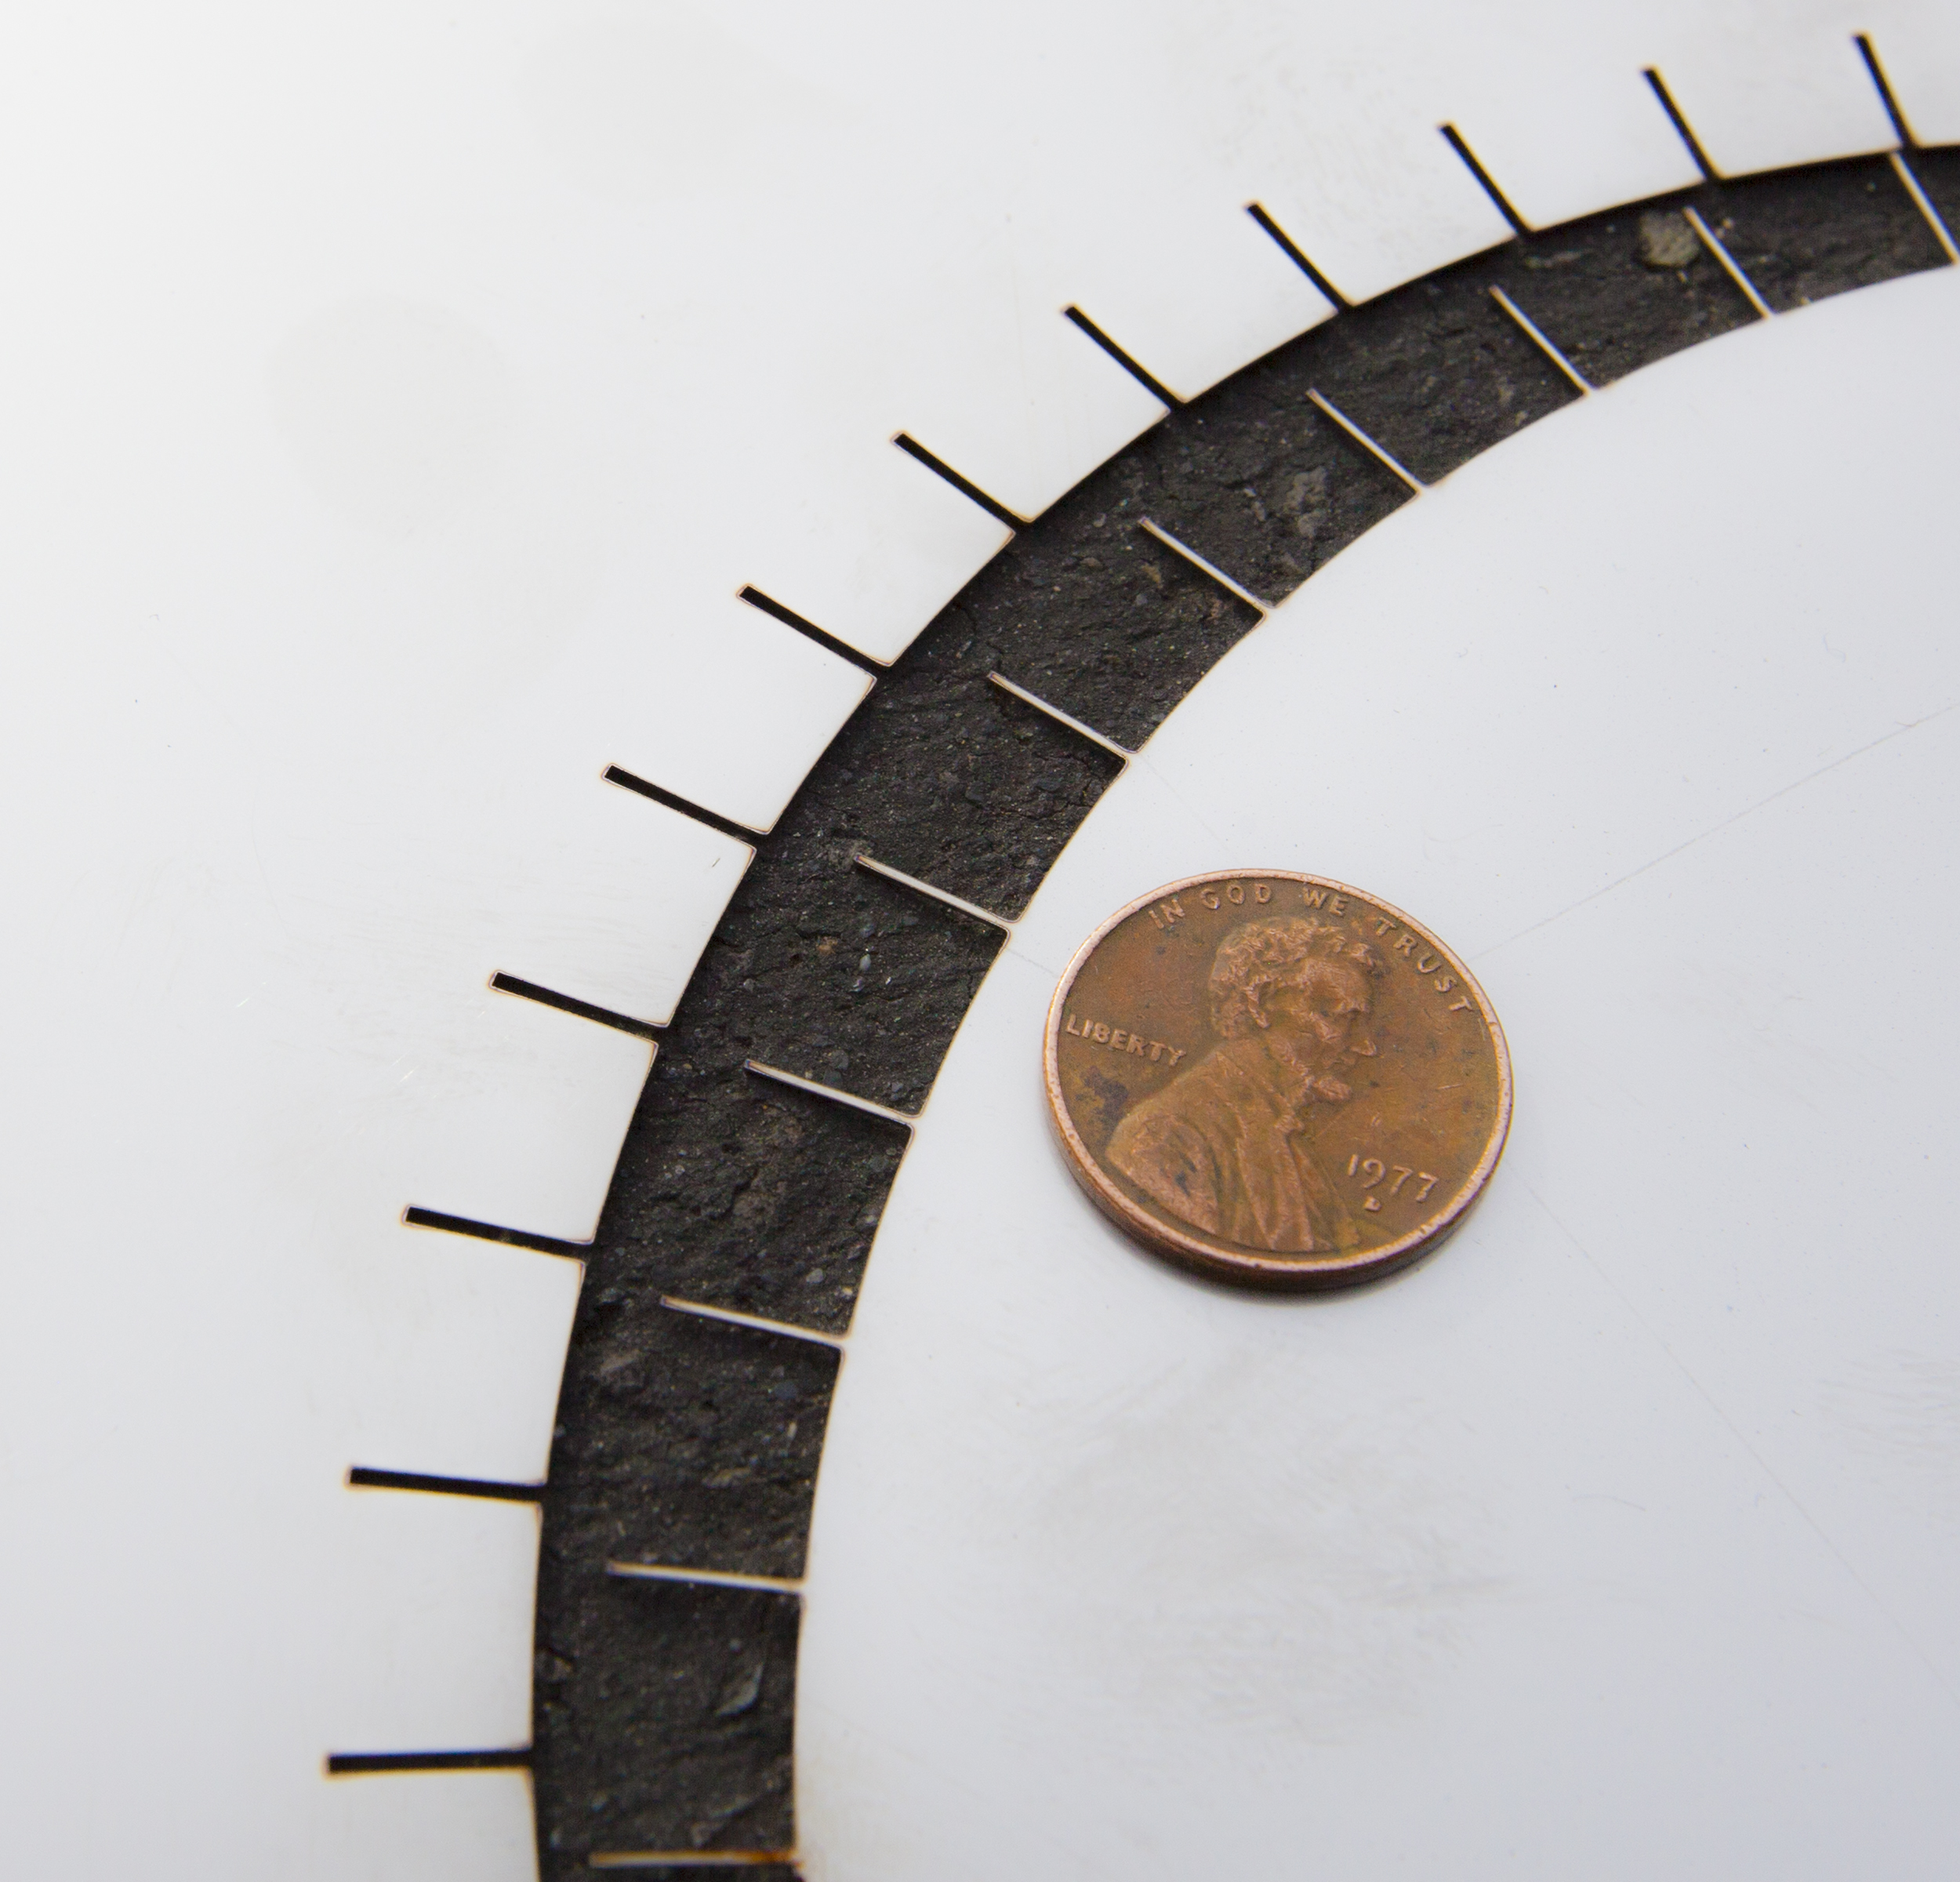 A penny next to a cut to show the precision detail